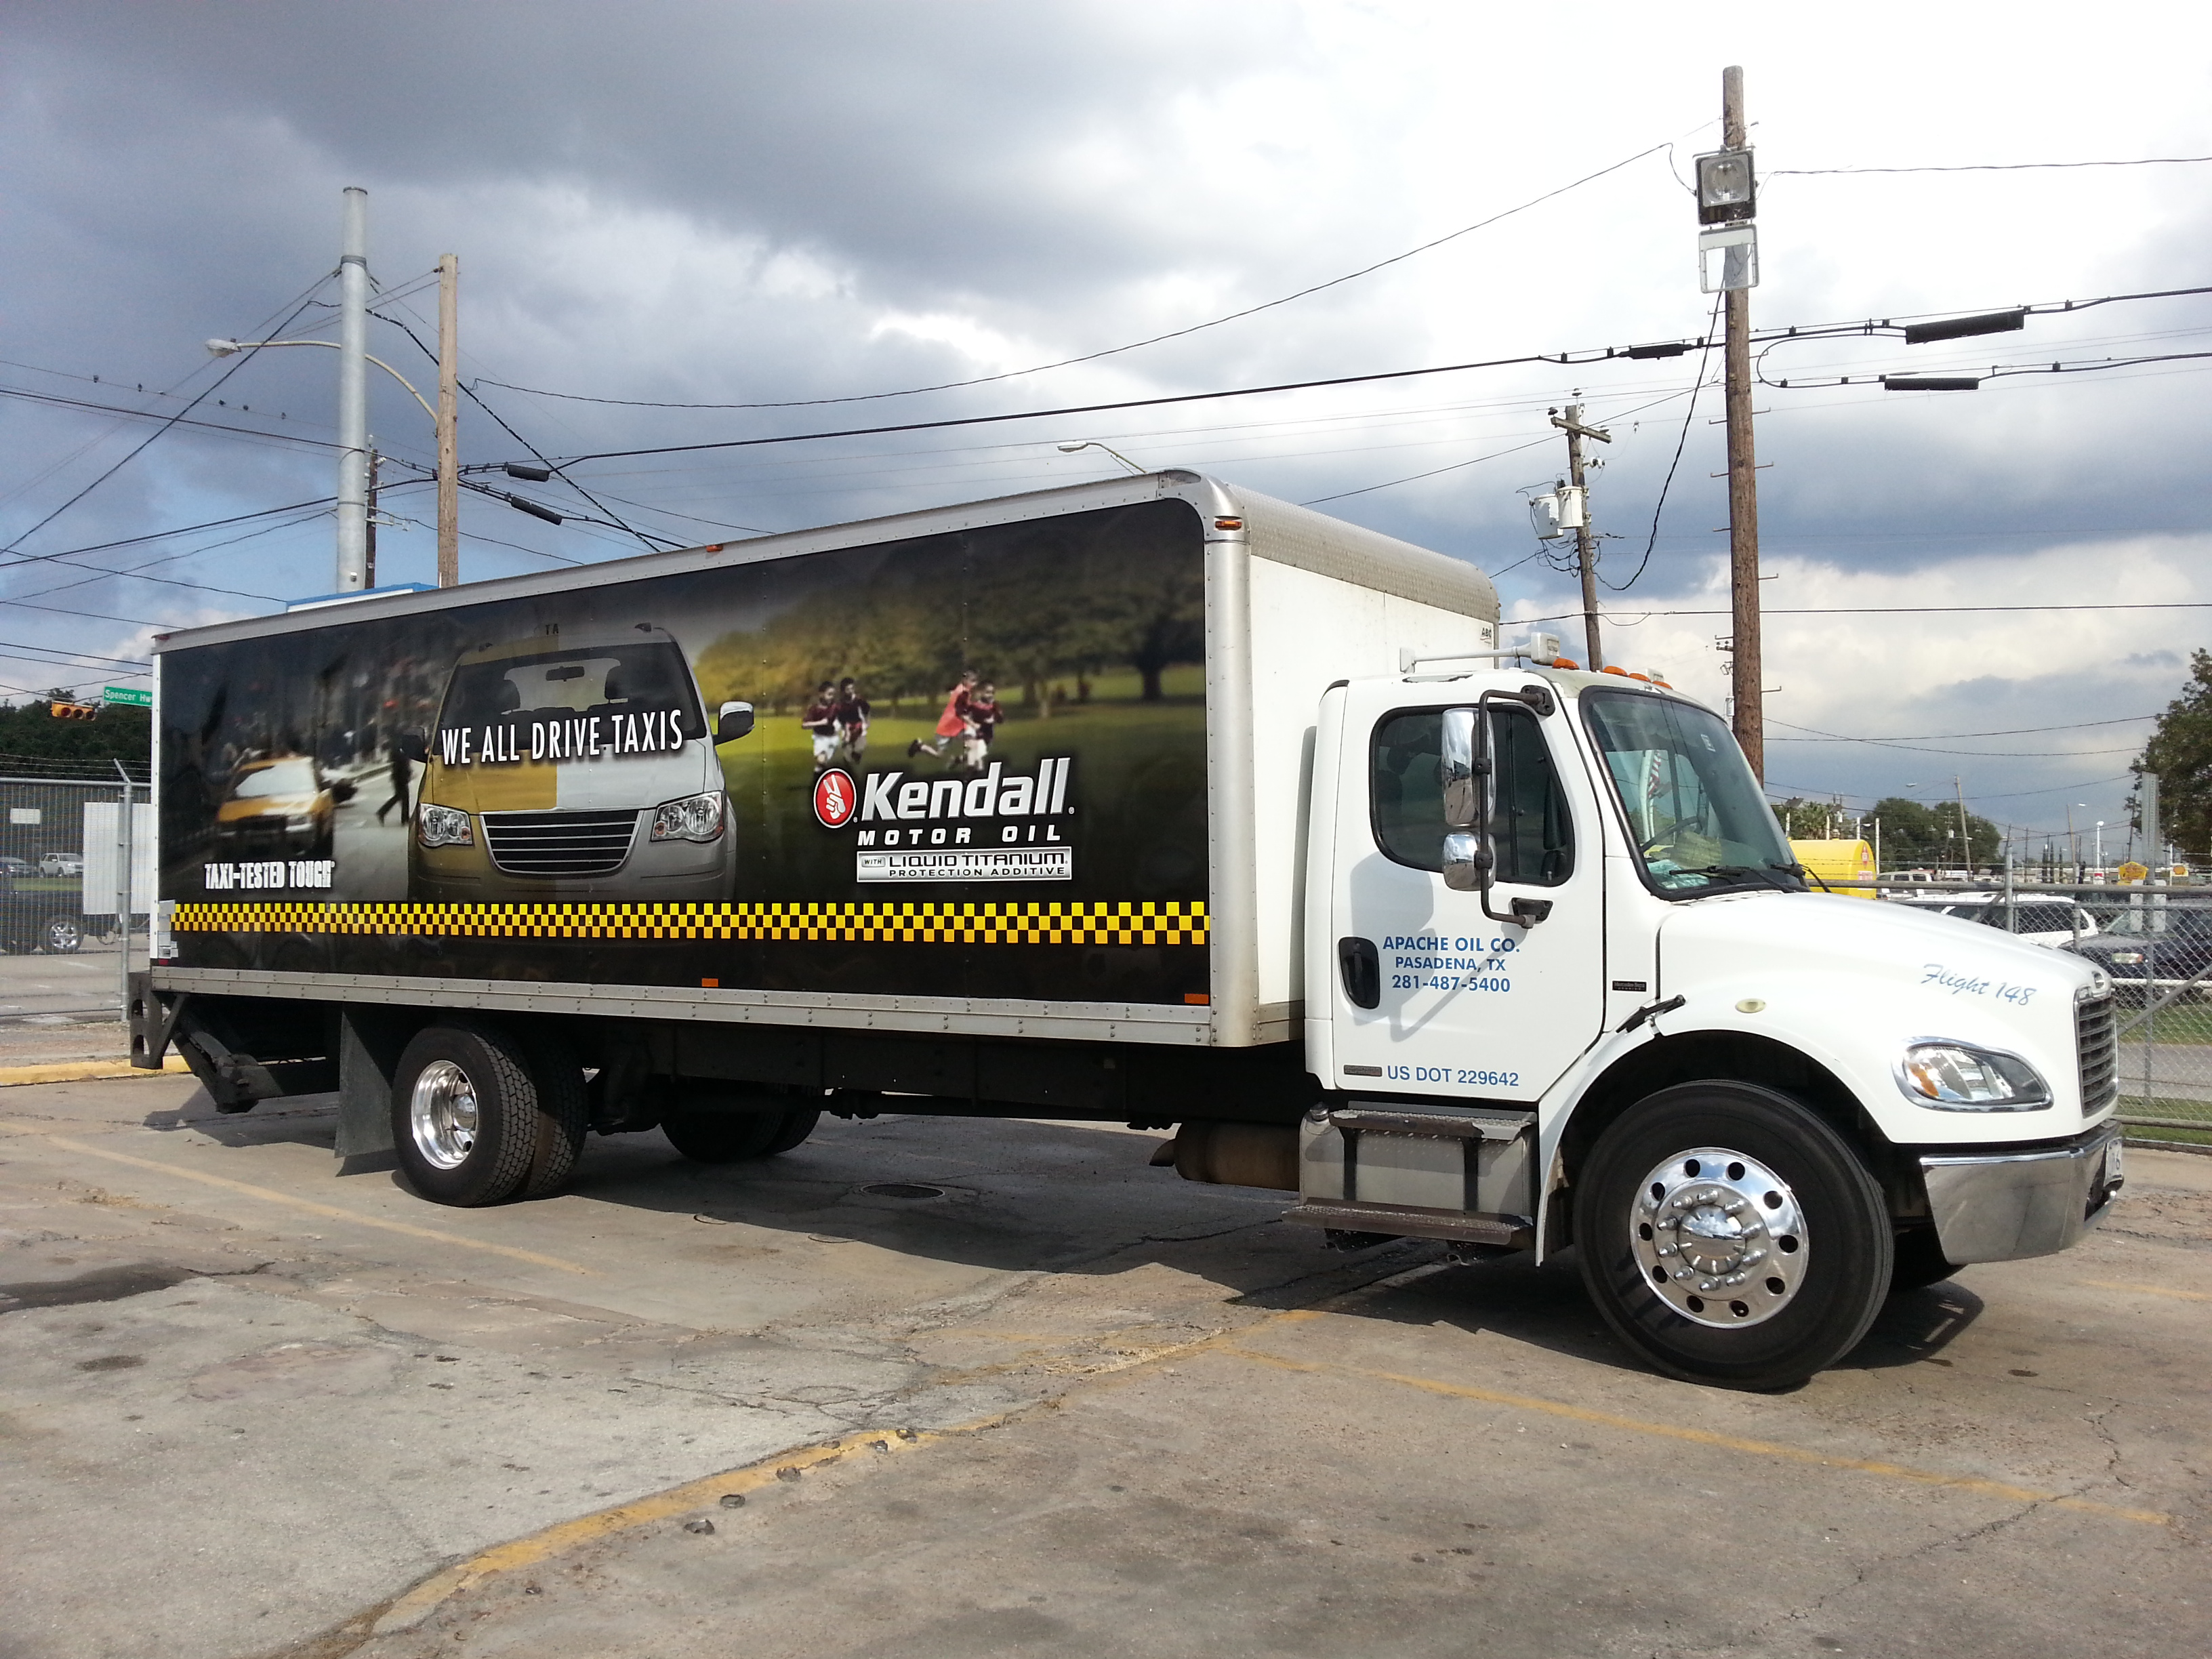 Apache oil company photos for Kendall motor oil distributors